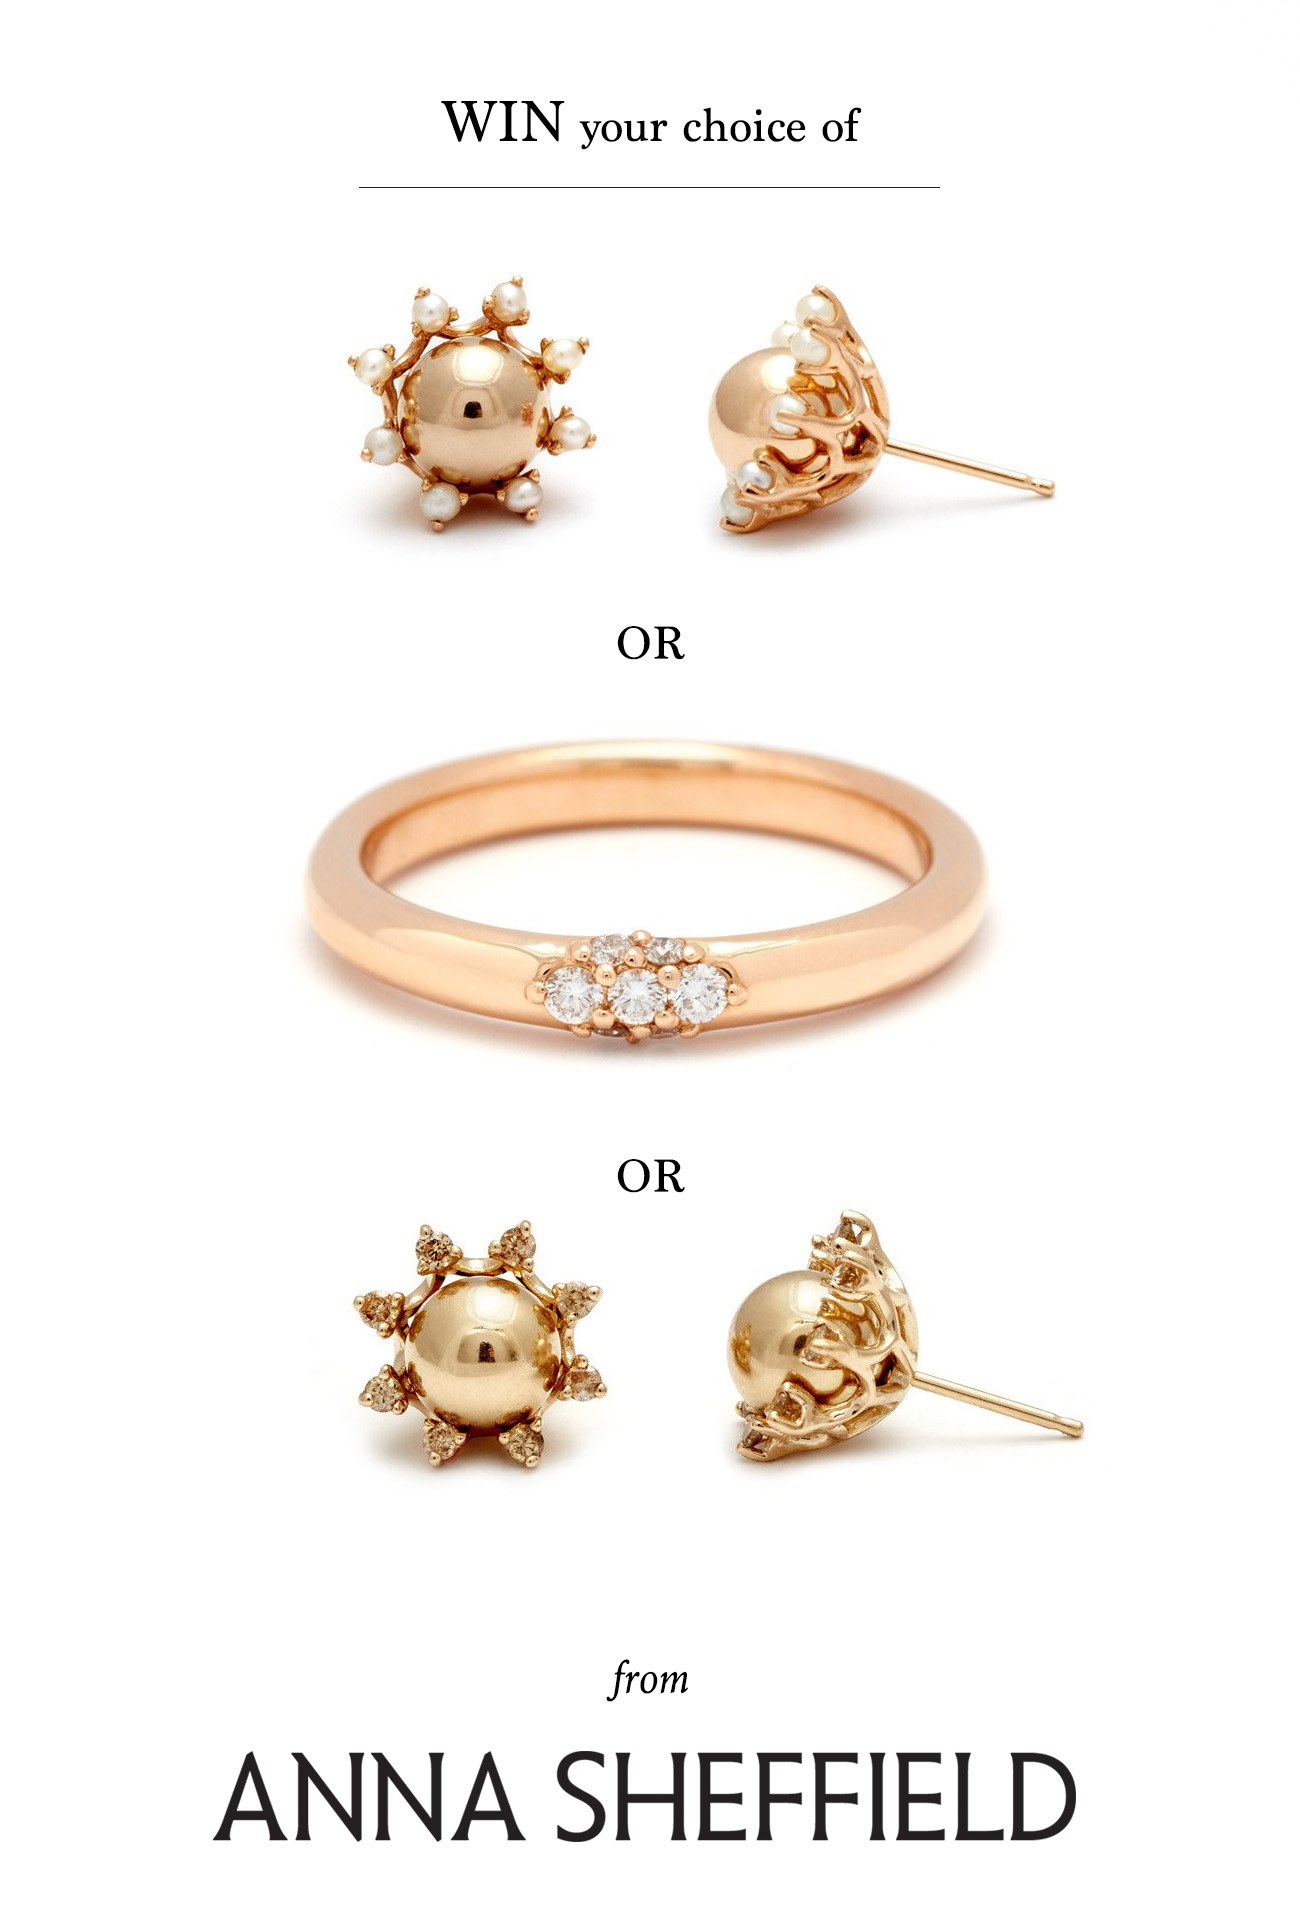 Win your choice of from Anna Sheffield